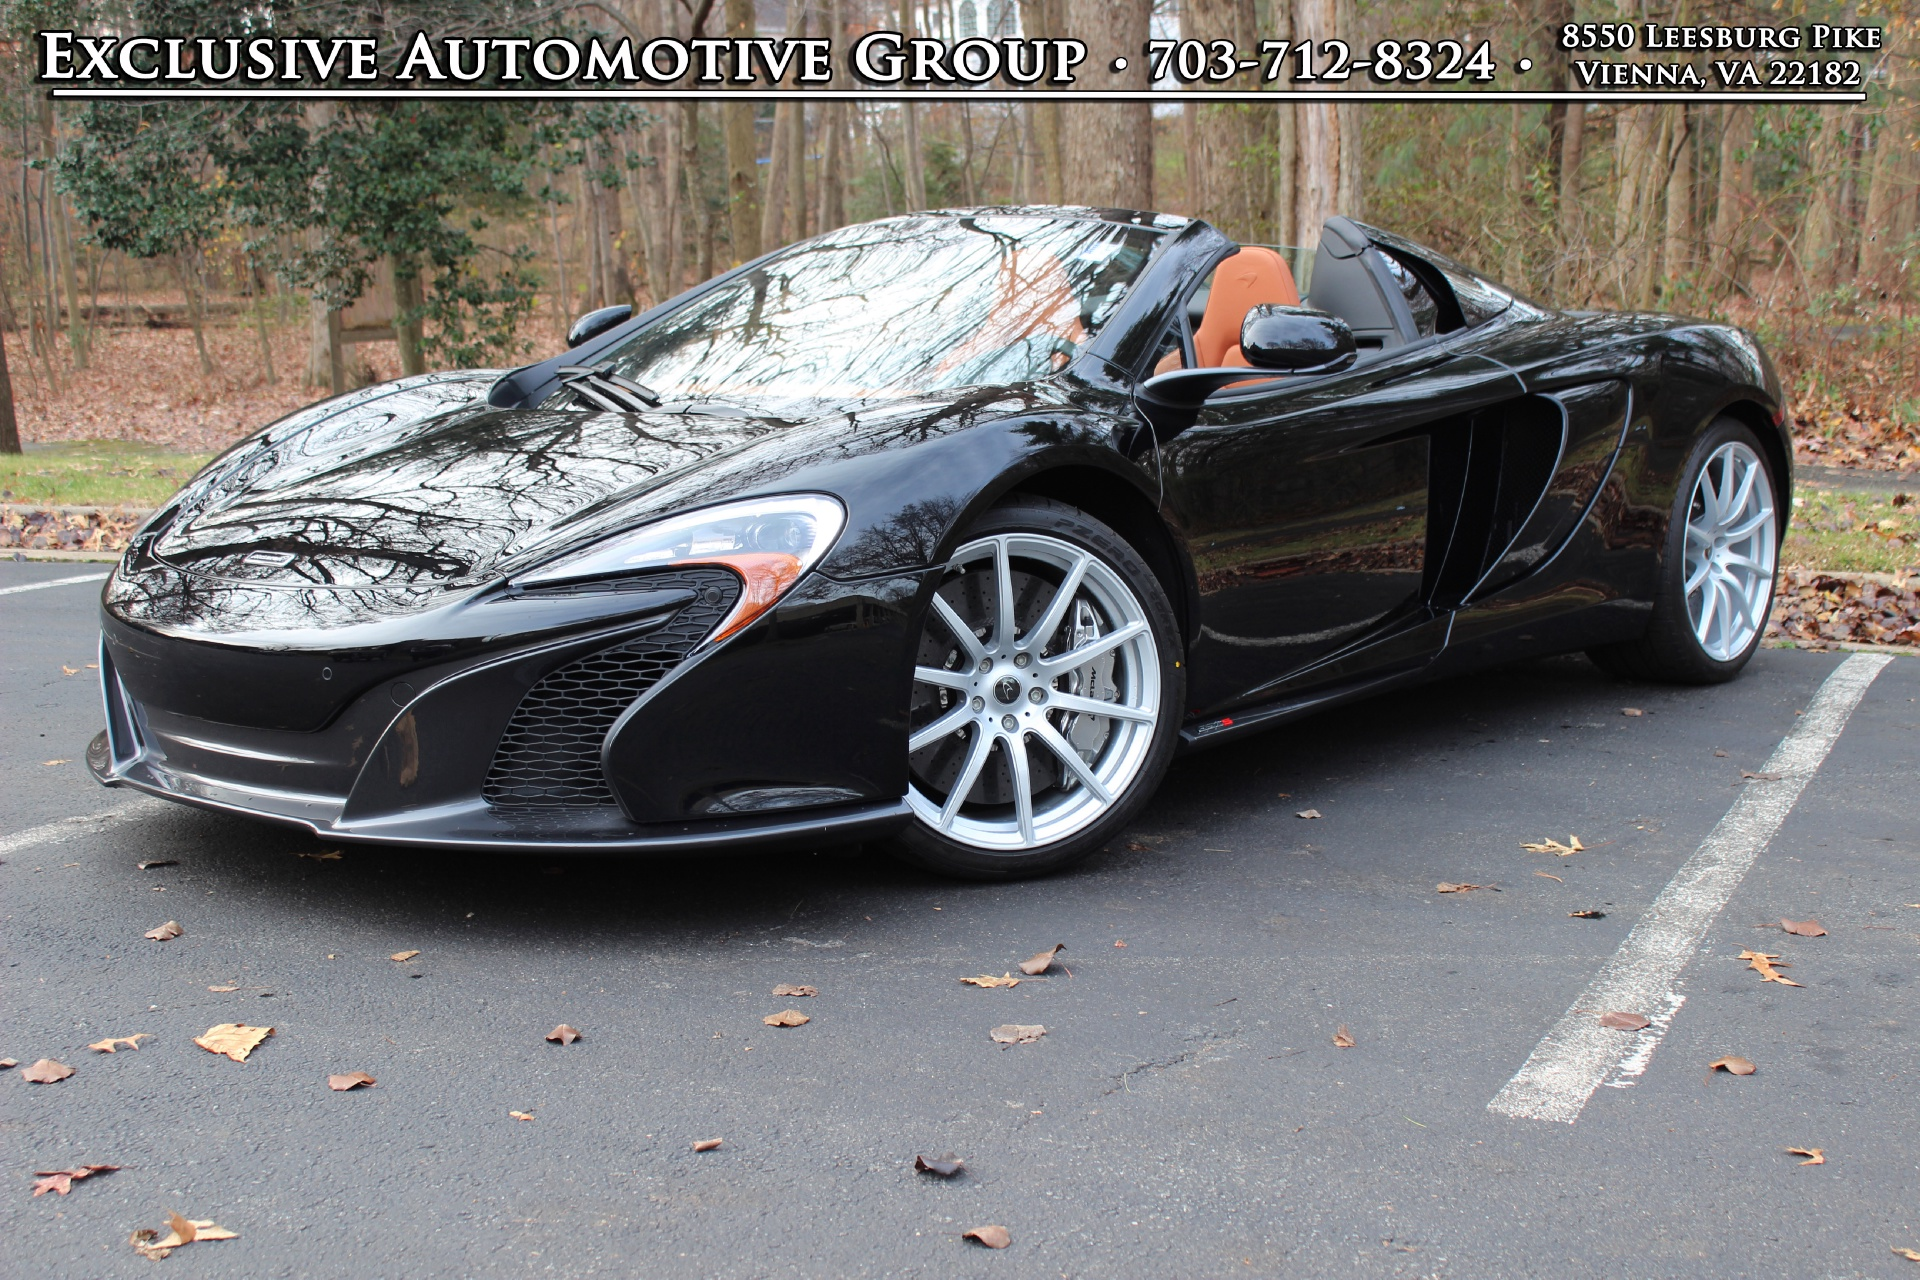 2015 mclaren 650s spider stock # 5w004389 for sale near vienna, va